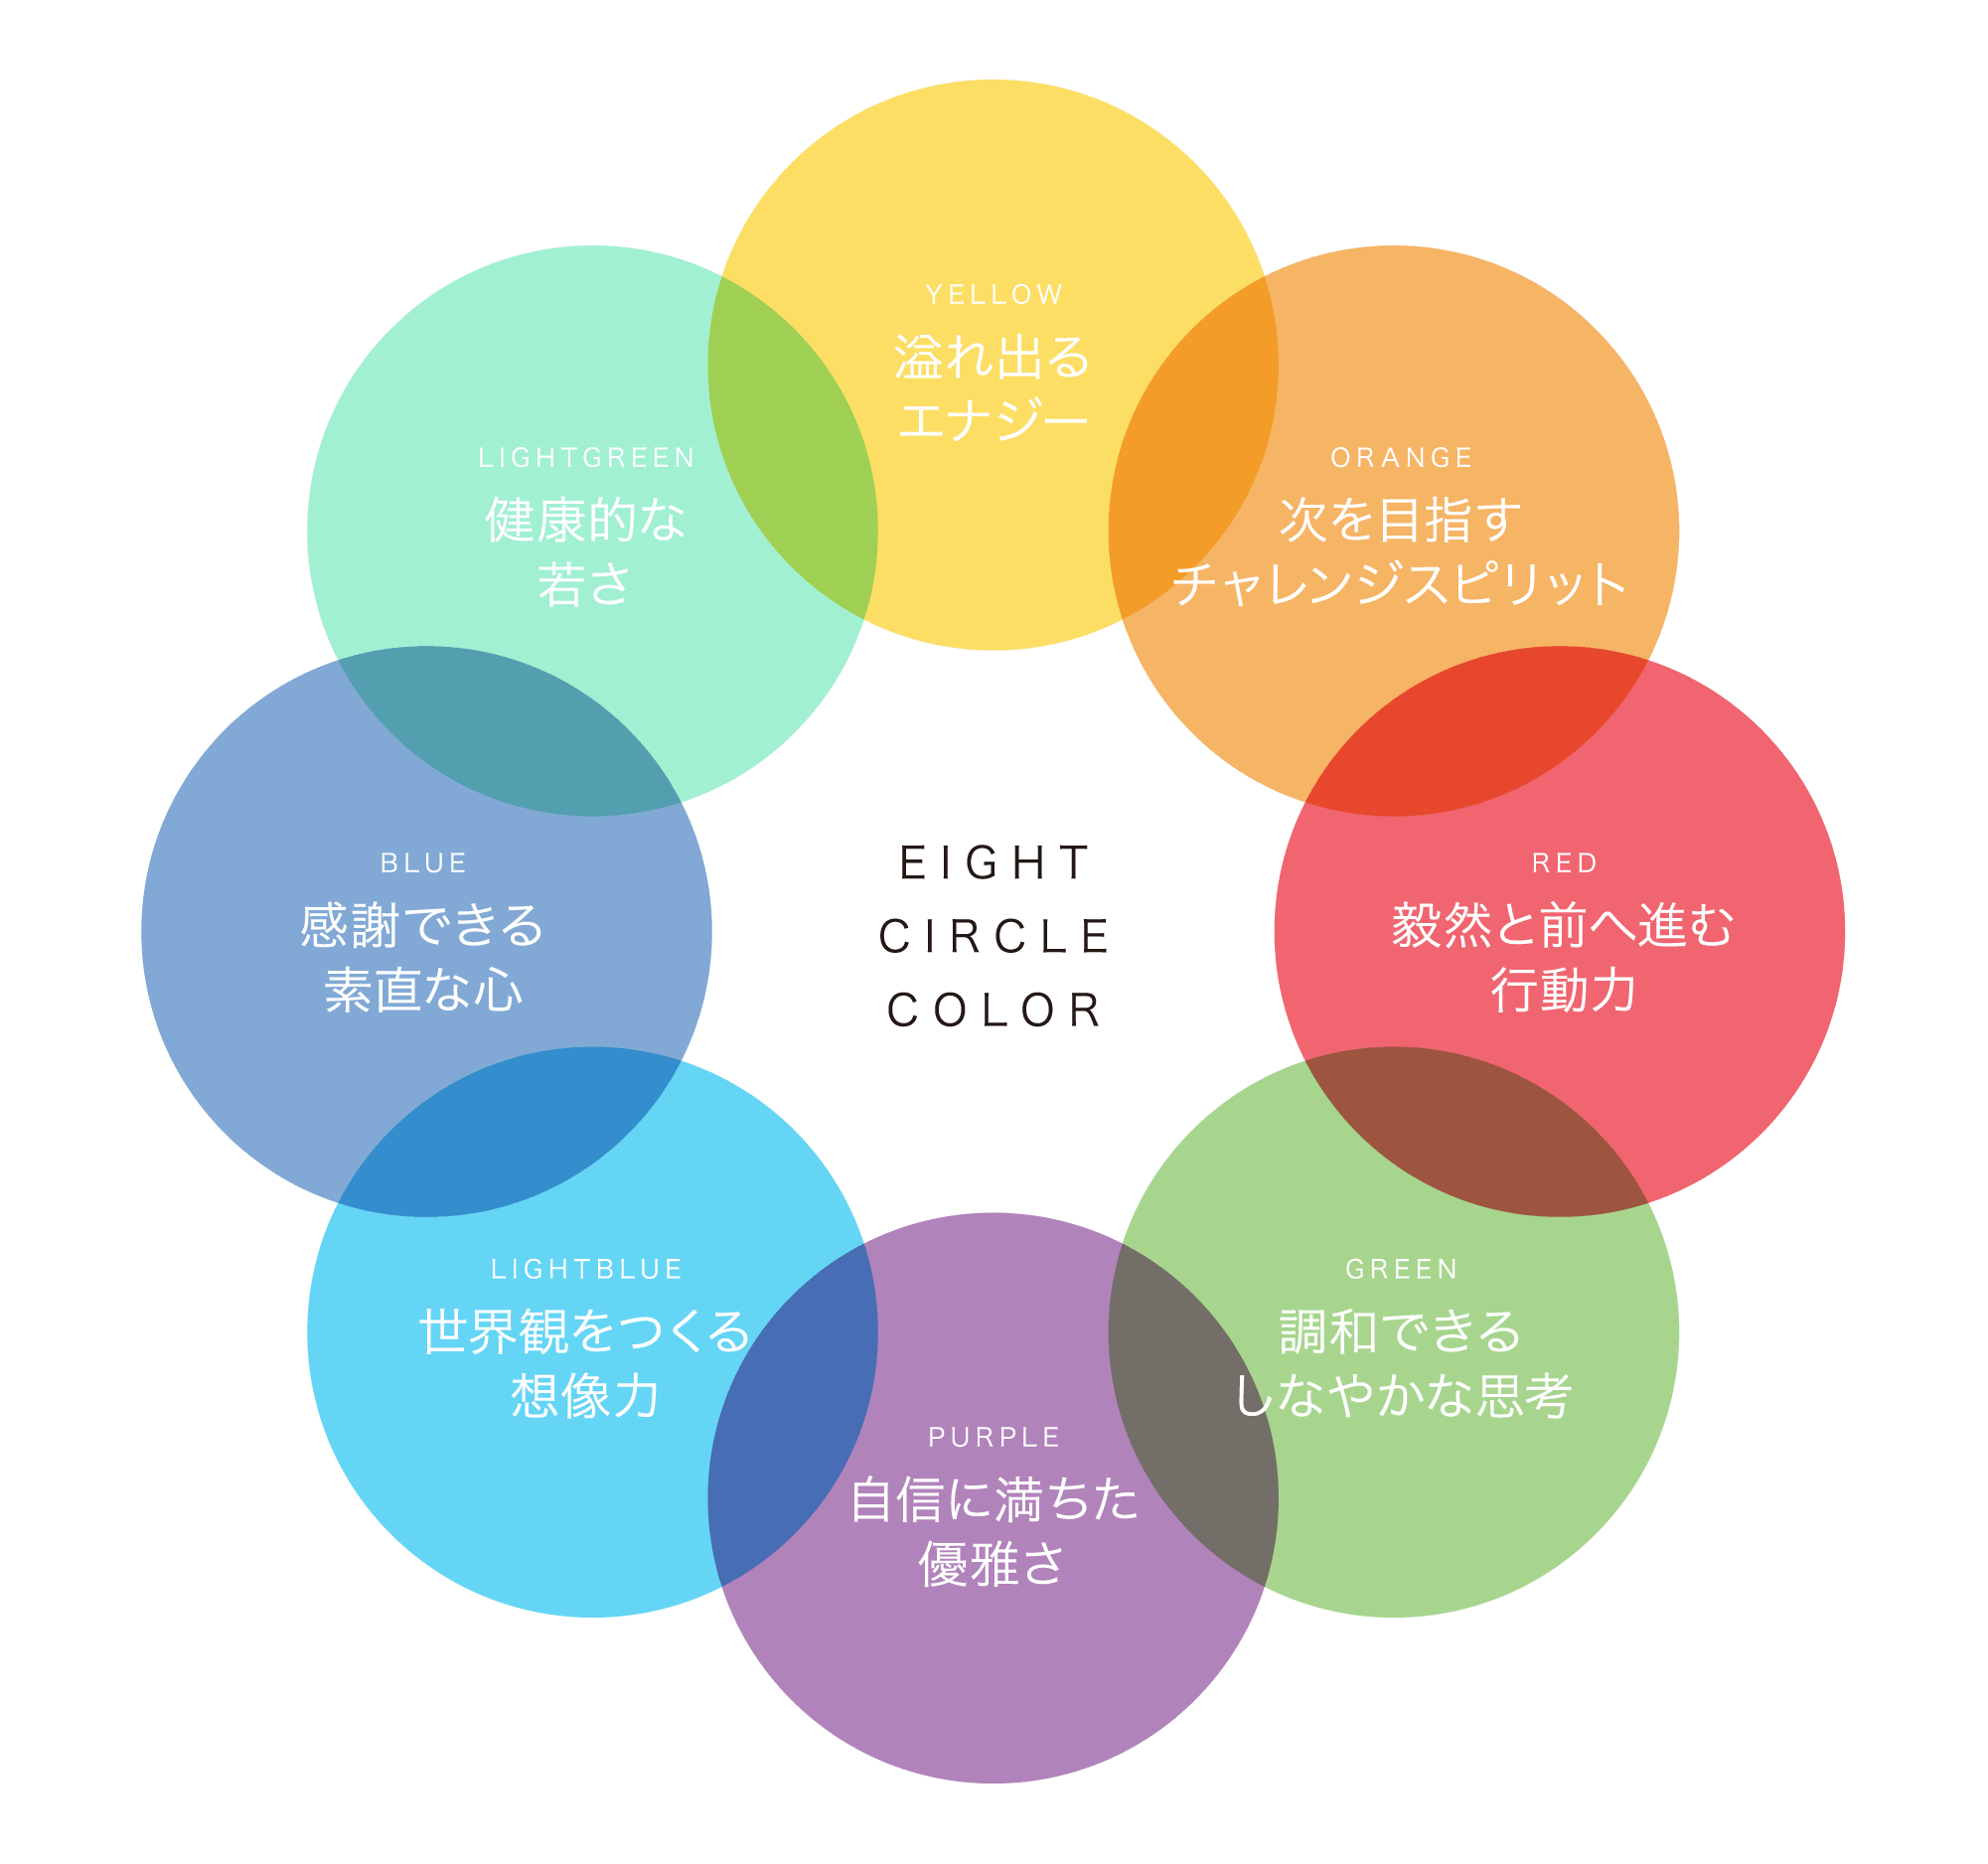 EIGHT CIRCLE COLOR